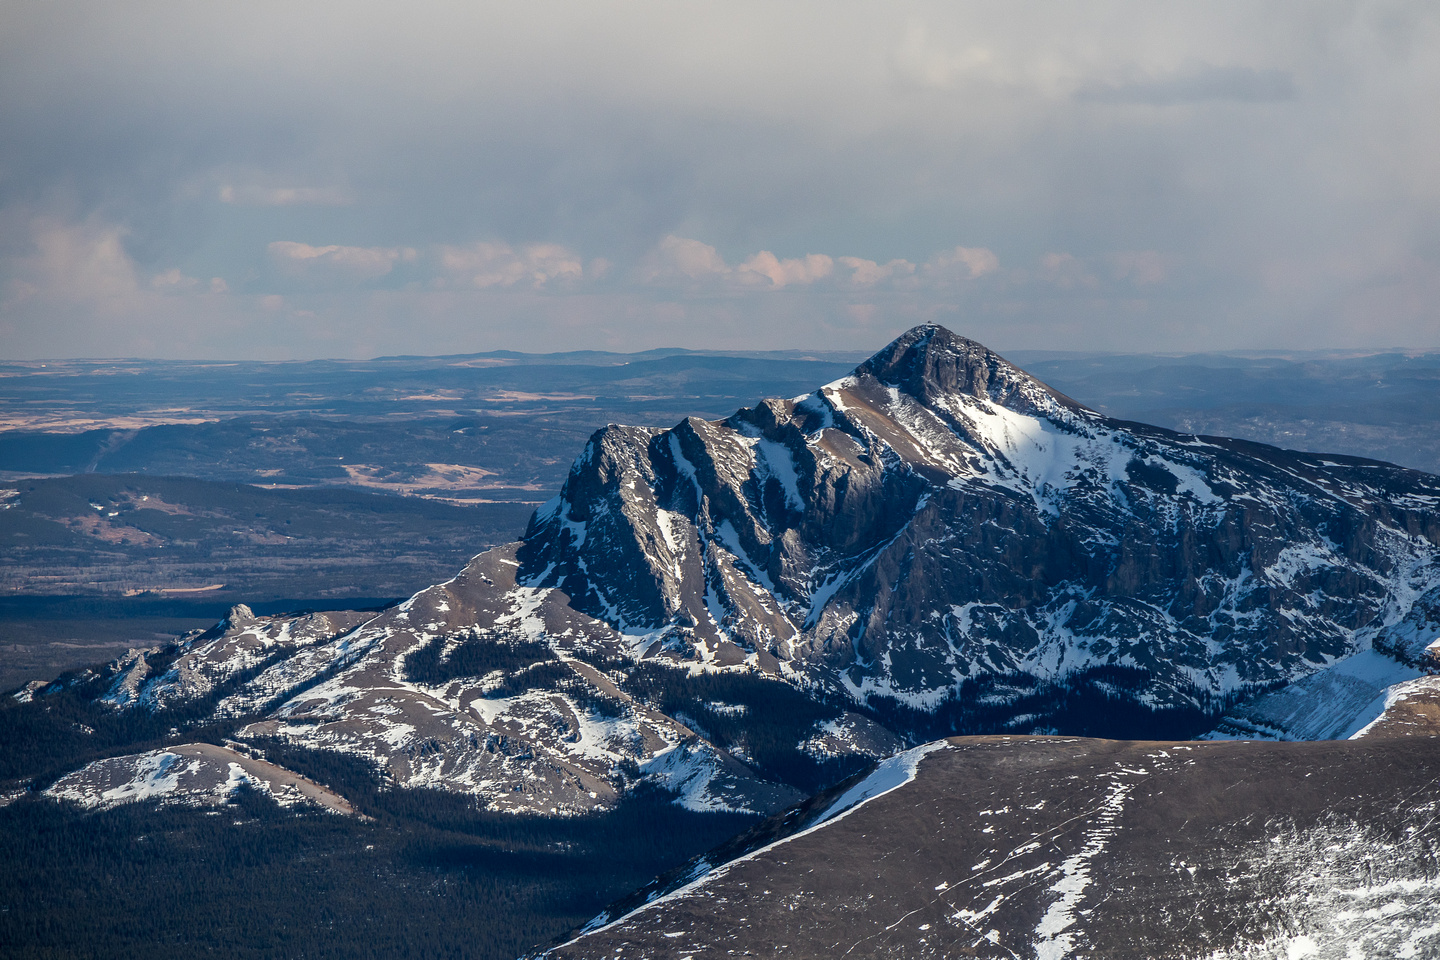 Black Rock Mountain is a striking front range peak from this angle.